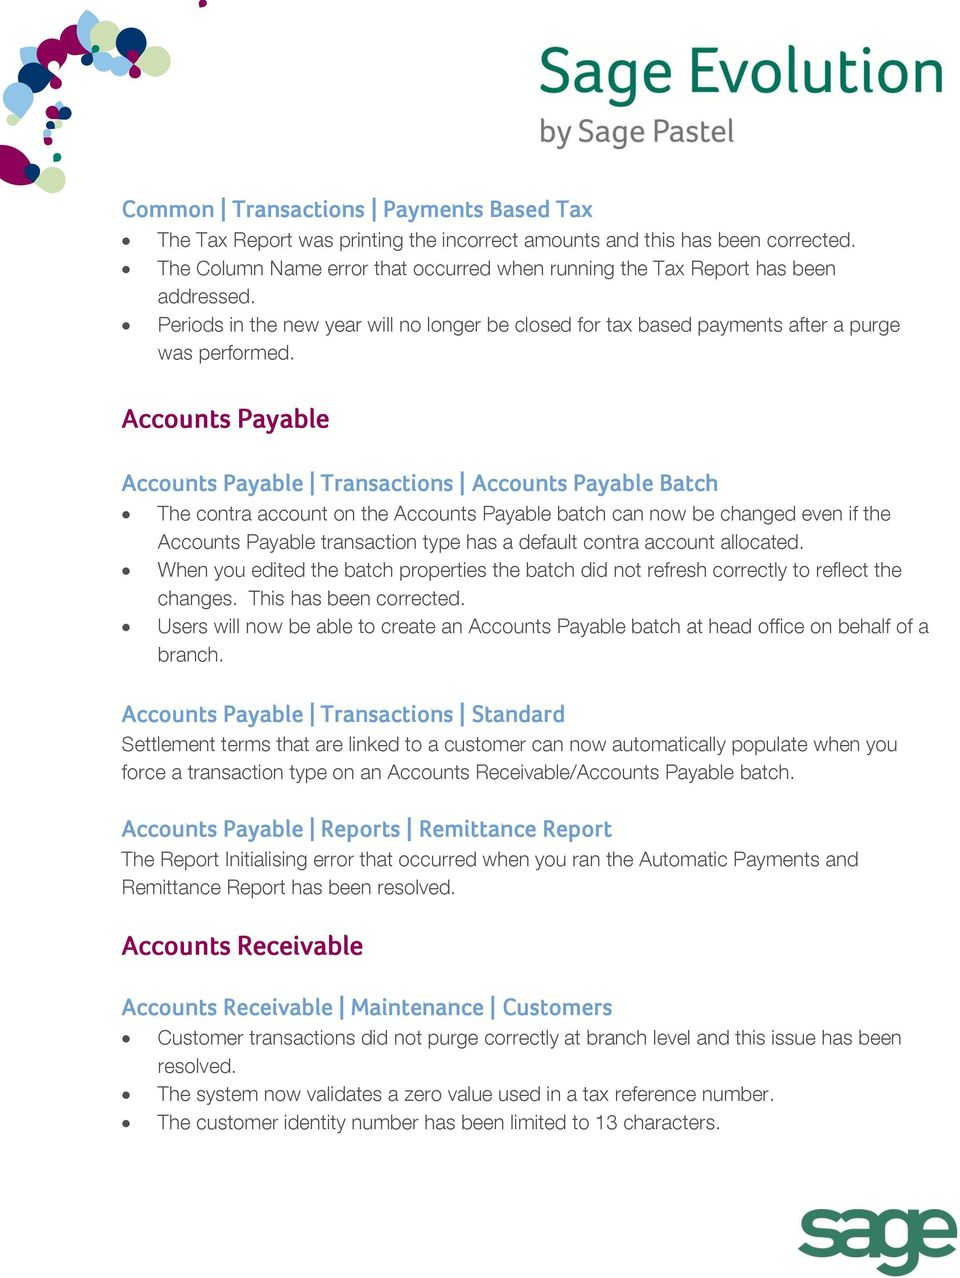 Accounts Payable Accounts Payable Transactions Accounts Payable Batch The contra account on the Accounts Payable batch can now be changed even if the Accounts Payable transaction type has a default